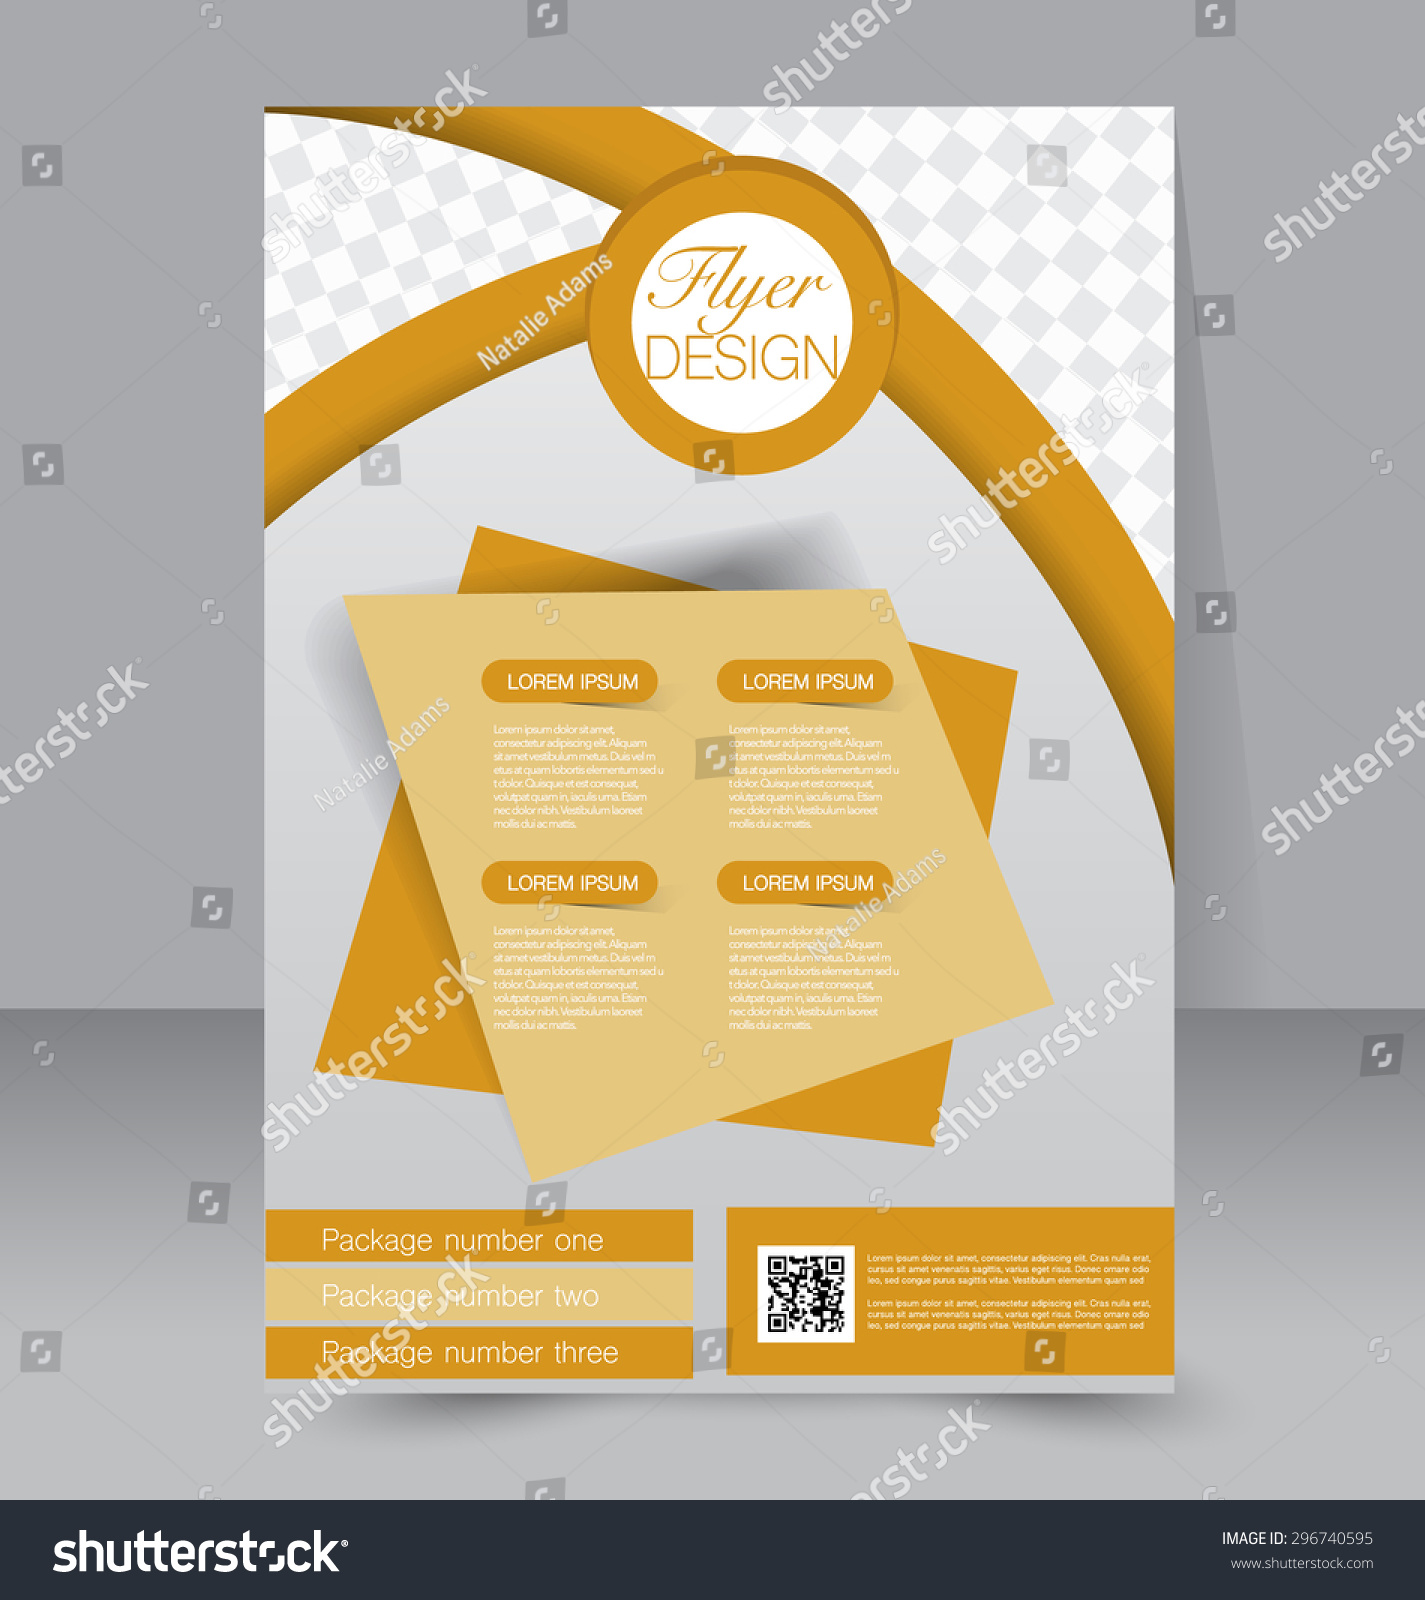 editable brochure templates - flyer template business brochure editable a4 stock vector